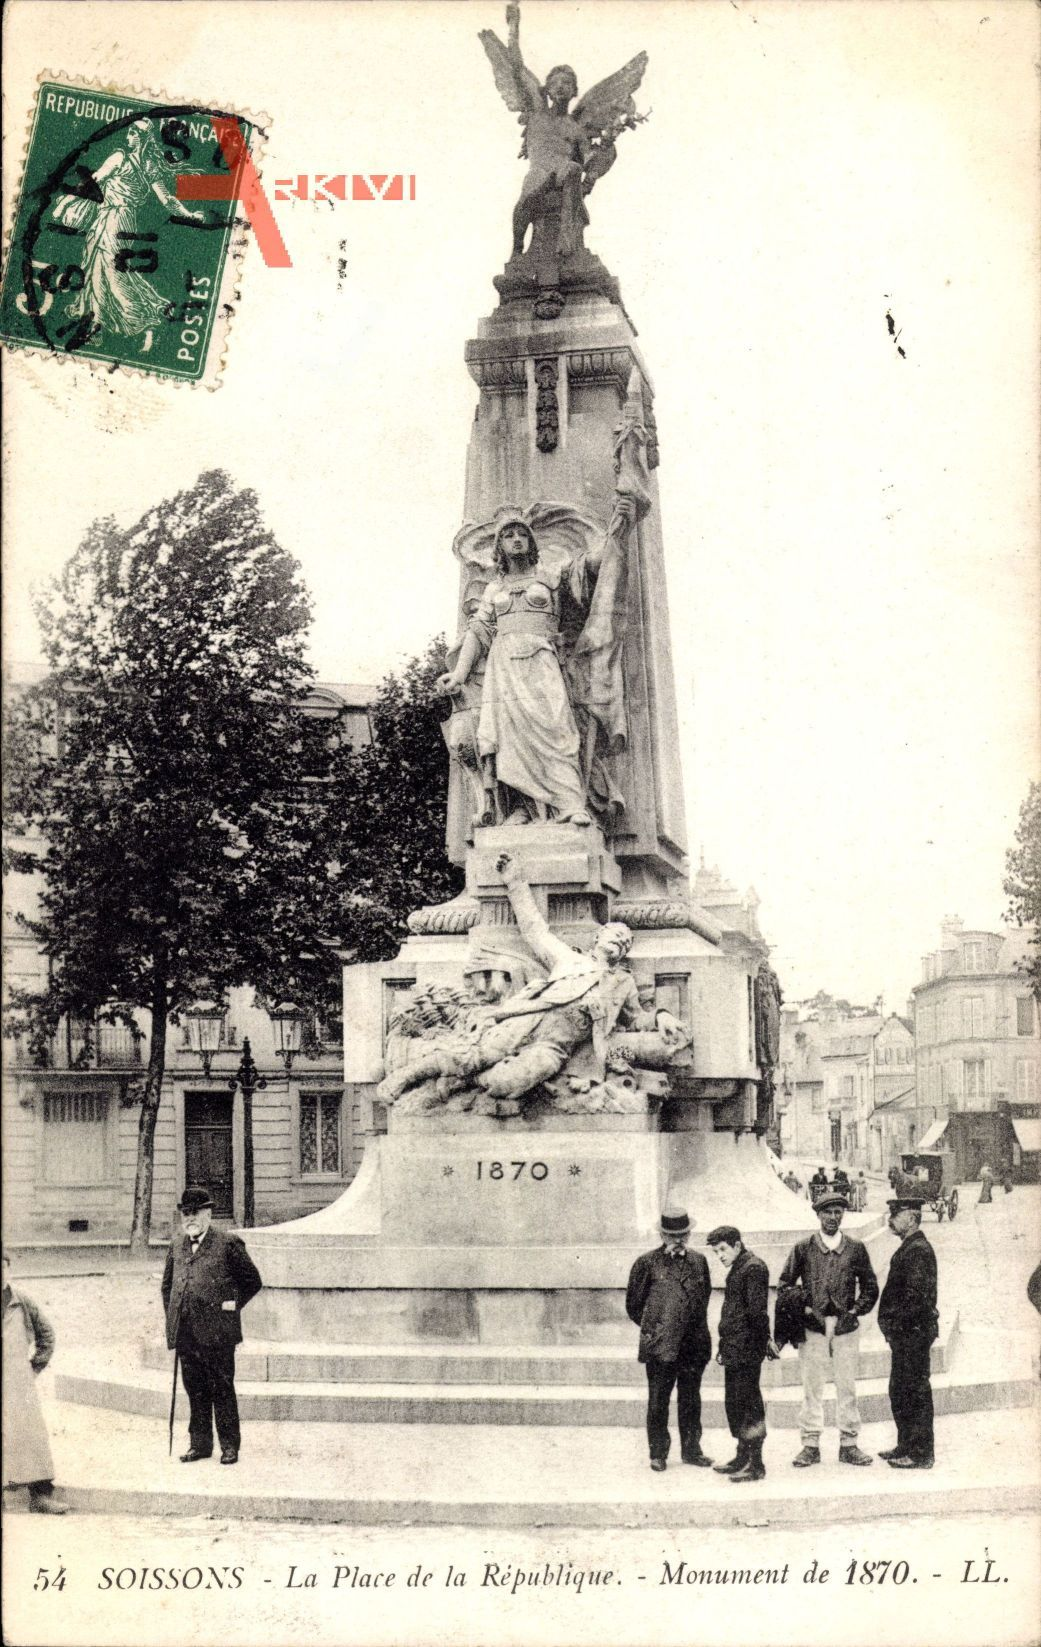 Soissons Aisne, Place de la Republique, Monument de 1870, Denkmal